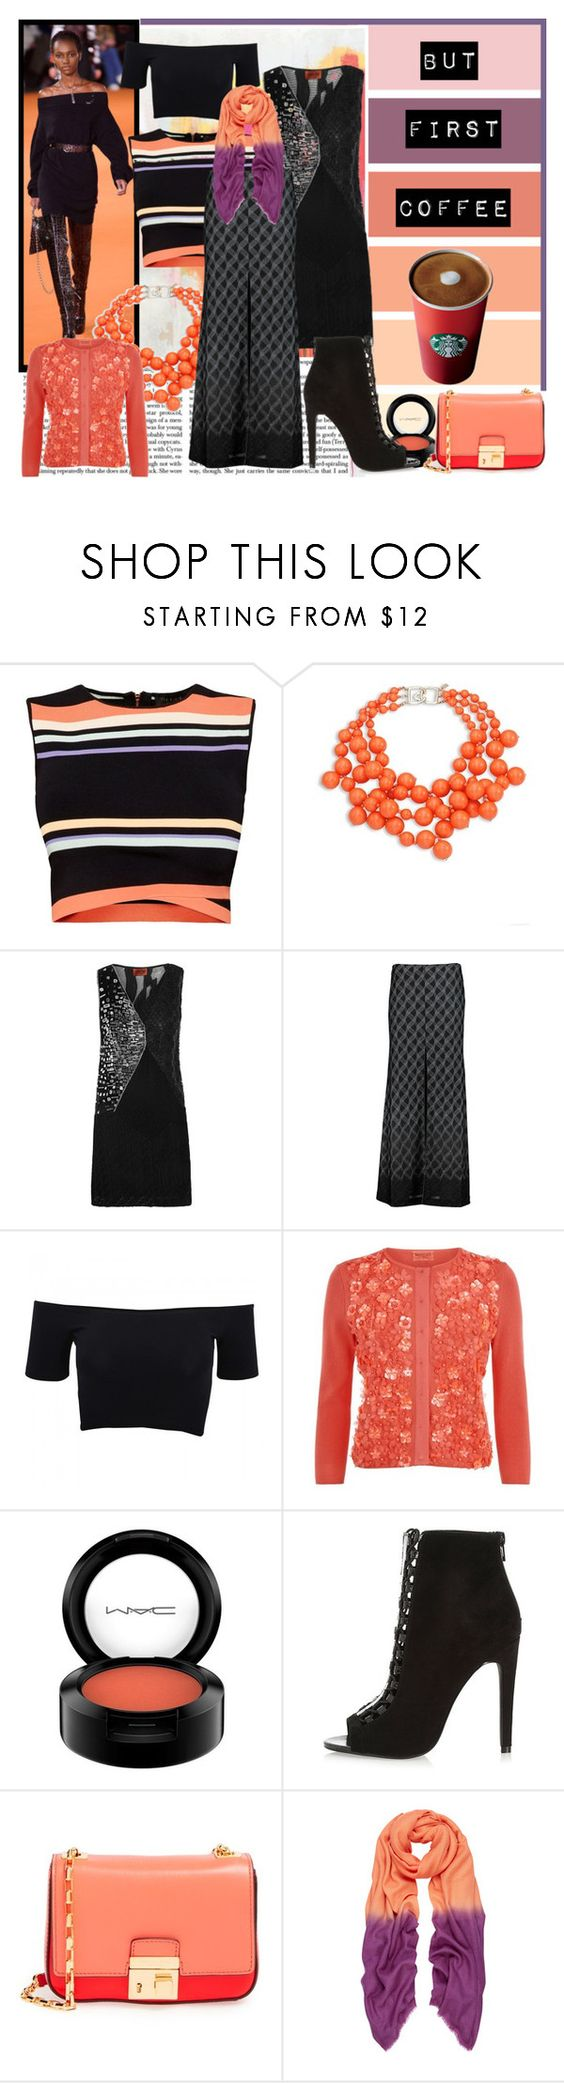 """""""At the beginning I always hate orange......"""" by loveyou-331 ❤ liked on Polyvore featuring American Vintage, Ted Baker, Kenneth Jay Lane, Missoni, American Apparel, Giambattista Valli, MAC Cosmetics, River Island and Michael Kors"""